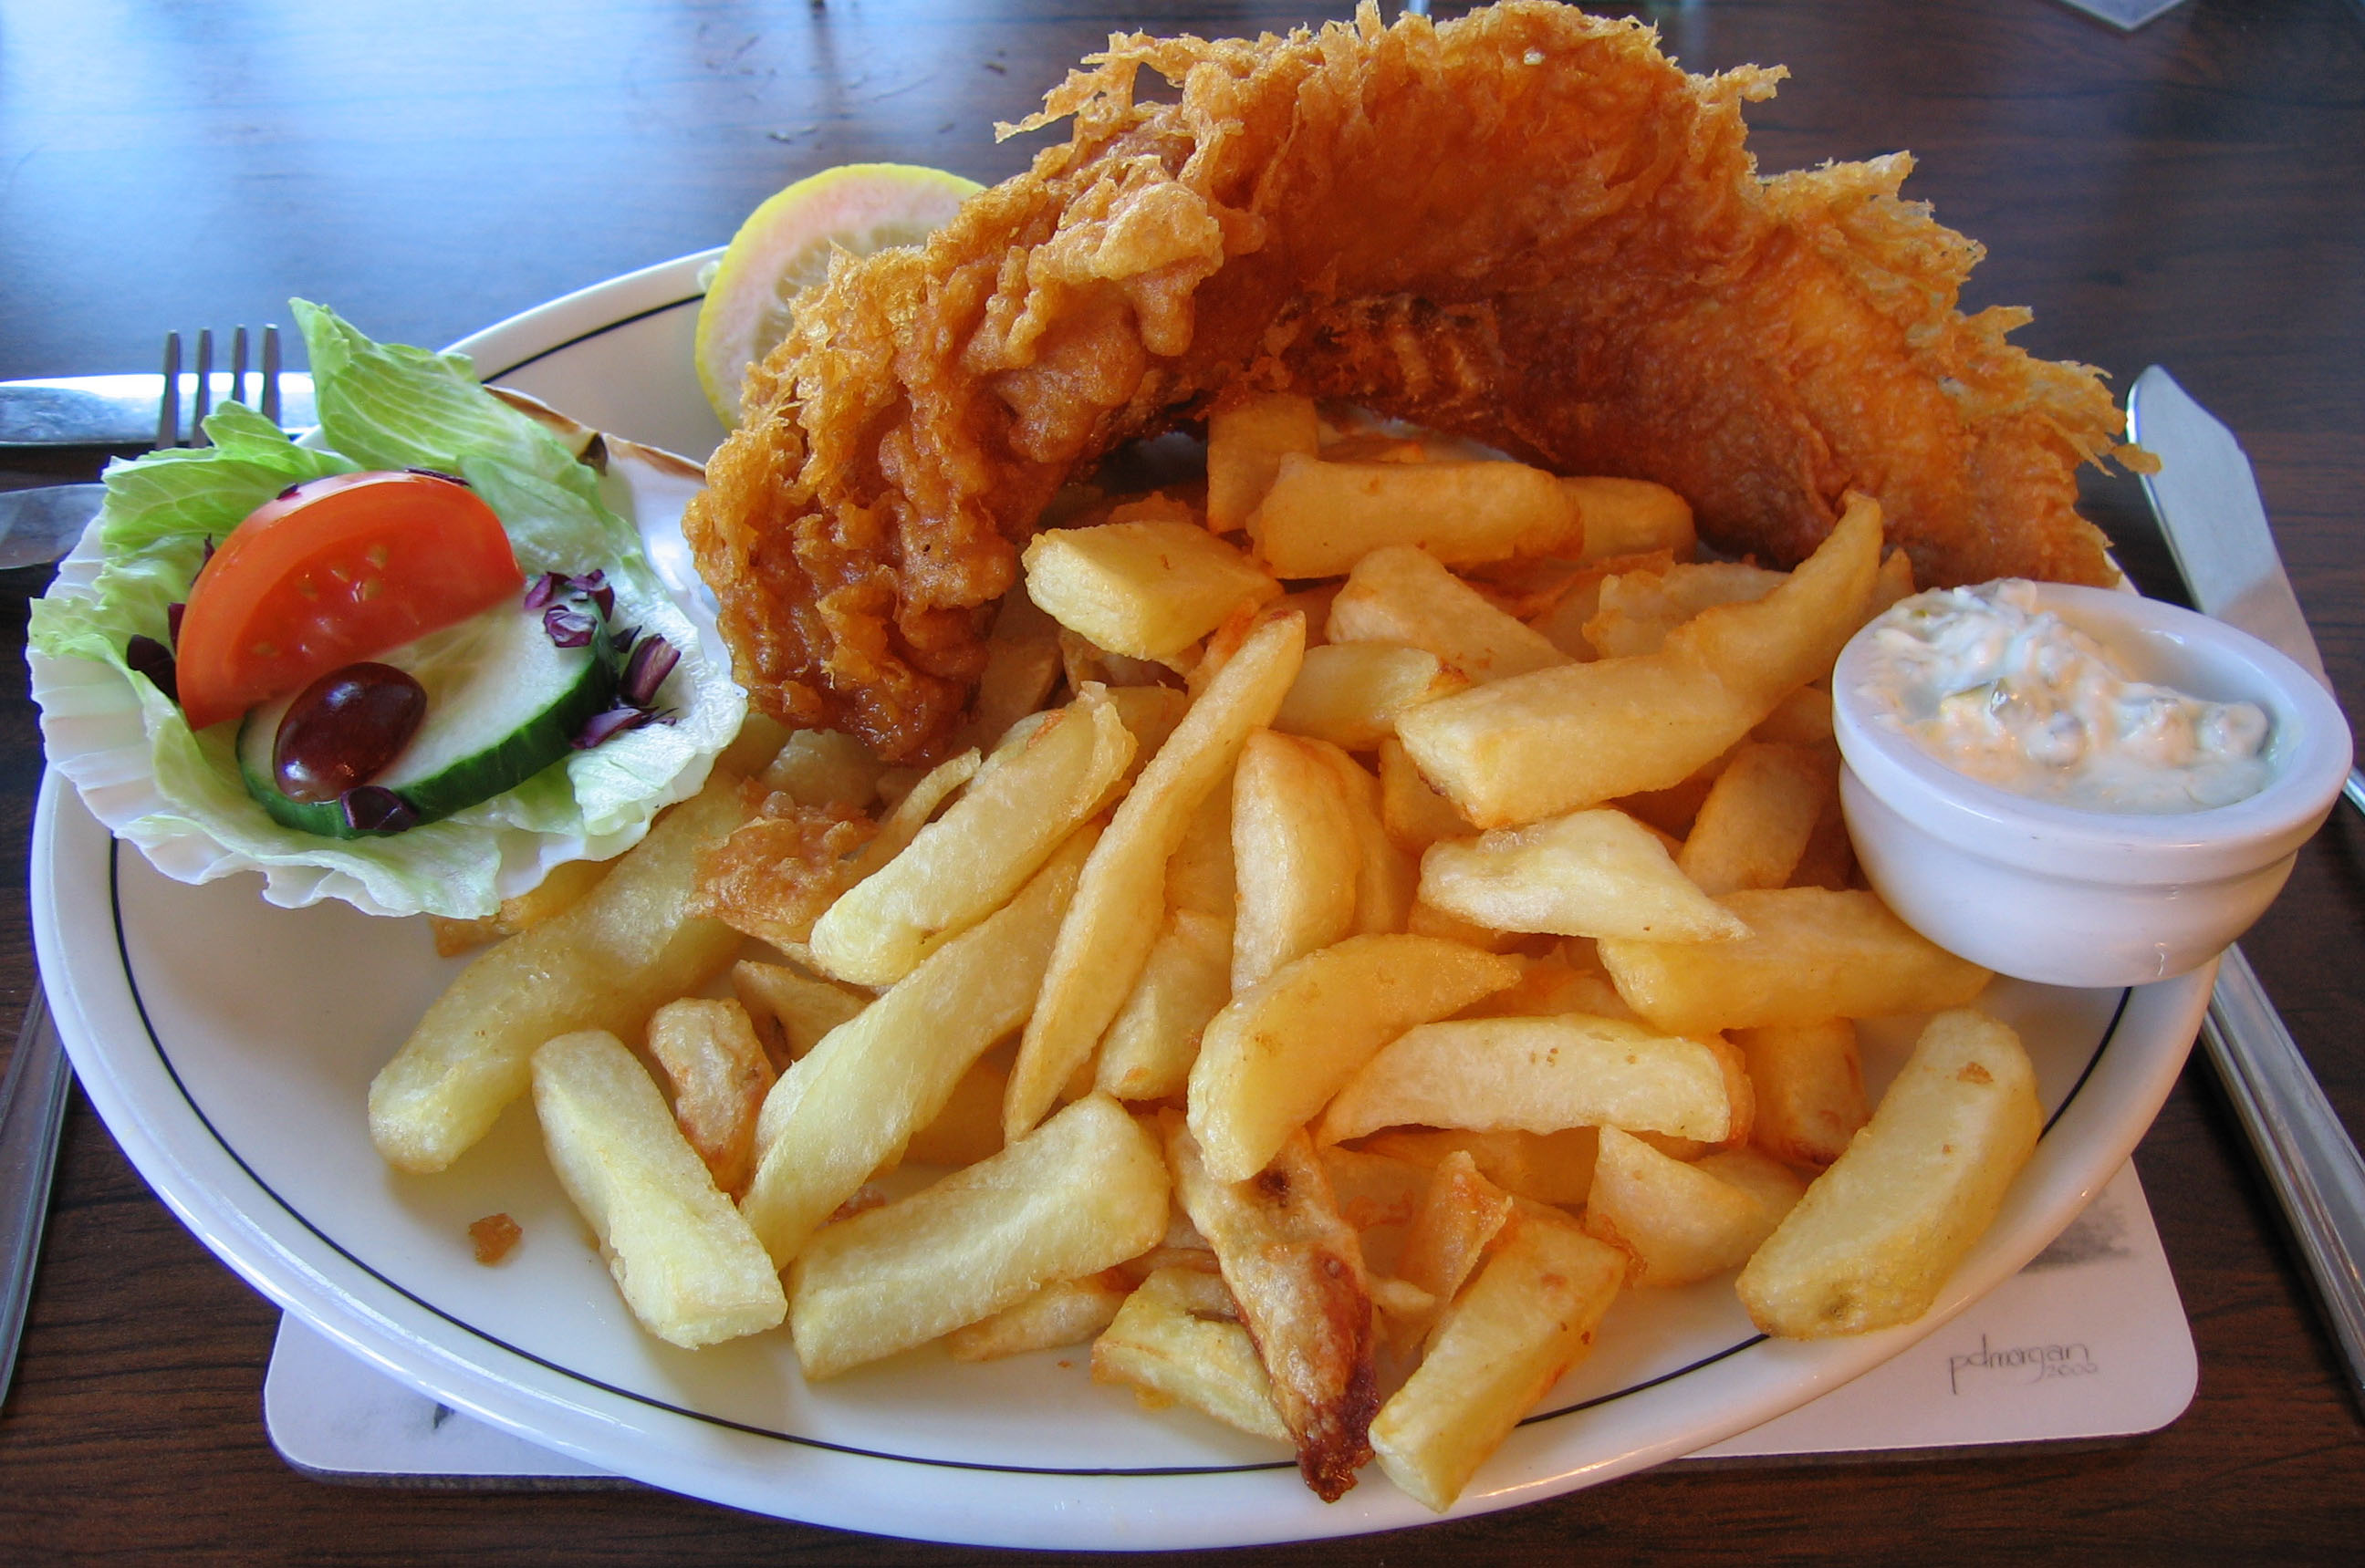 Fish 'n chips in The Magpie Café - Whitby